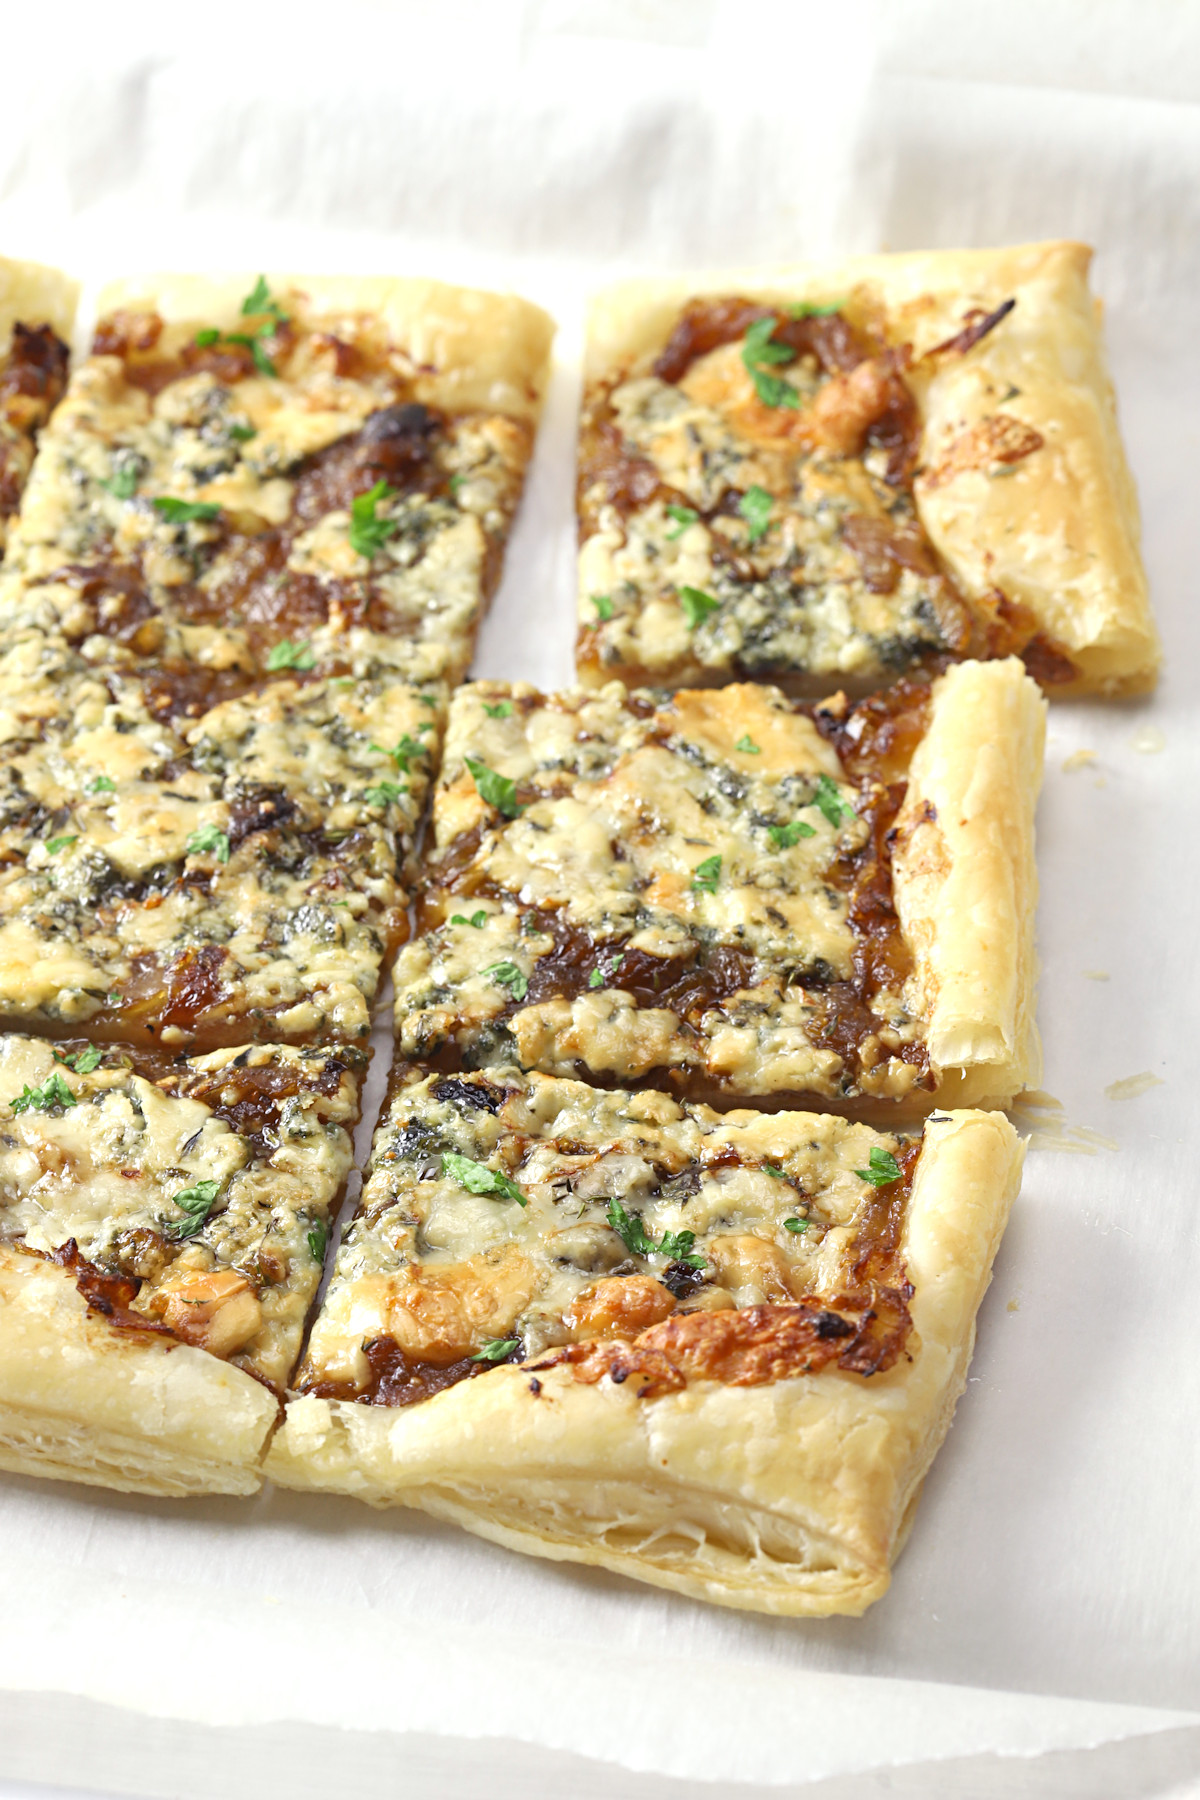 Caramelized onion tart sliced into squares.